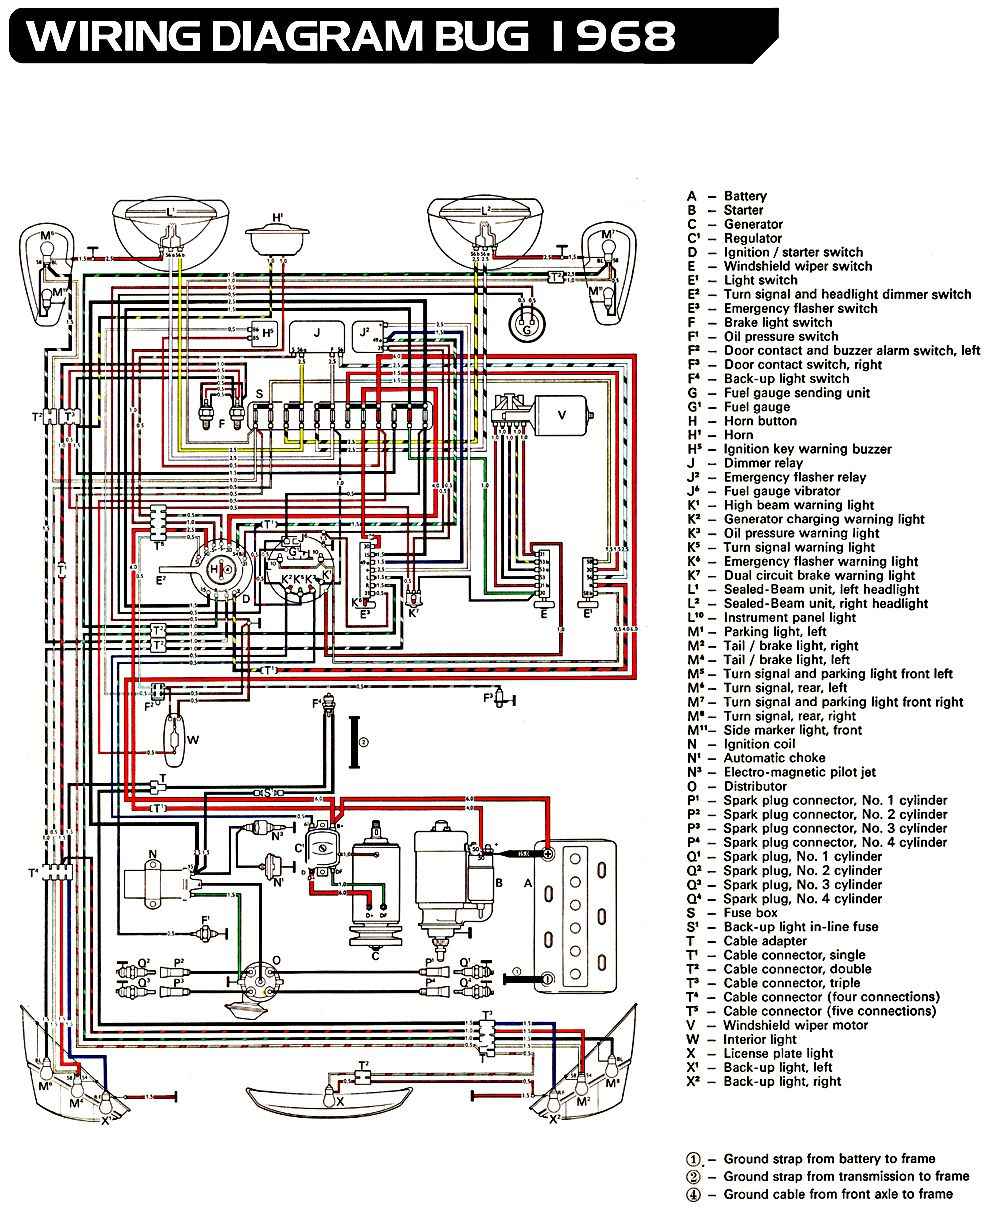 vw bug ignition wiring diagram 73 vw wiring diagram free vw 73 vw beetle coil wiring 73 vw bug ignition wiring [ 996 x 1211 Pixel ]